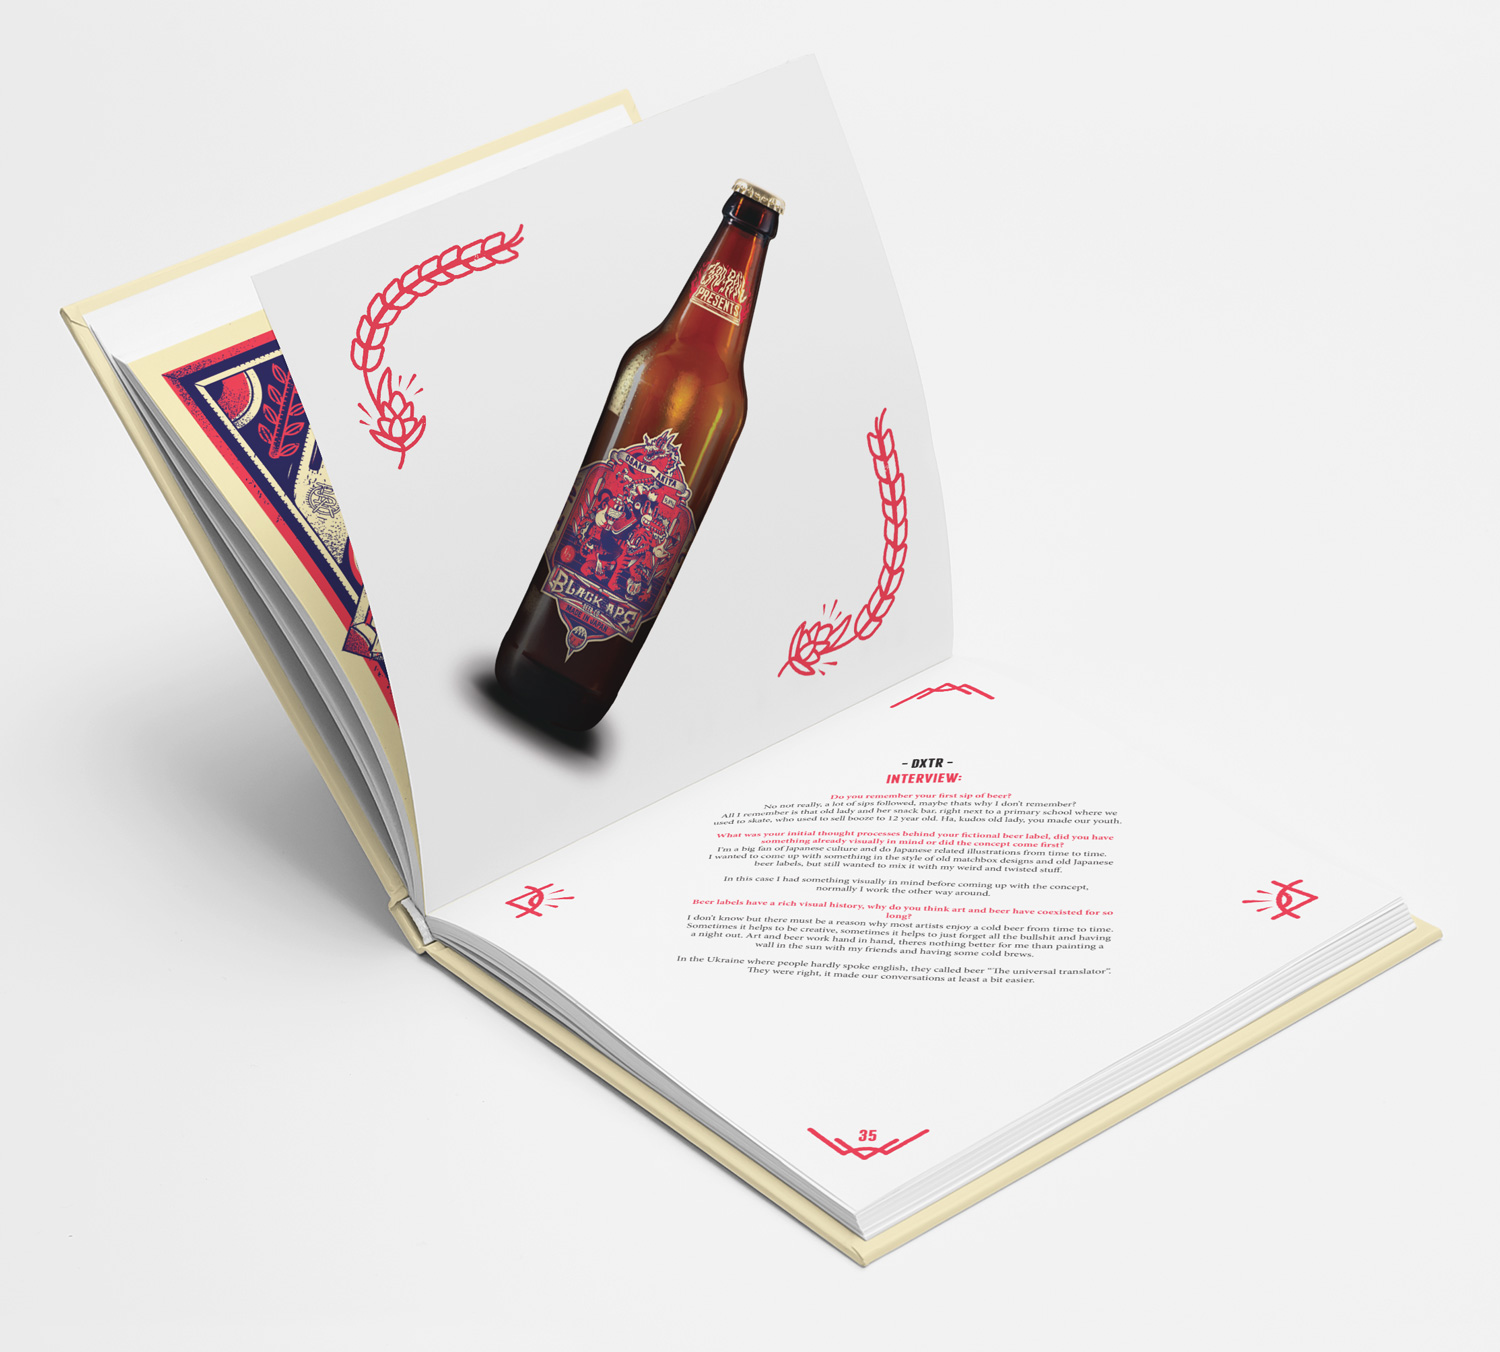 ABV – Artist Beer Visions - A Book Of Fictional Beer Labels